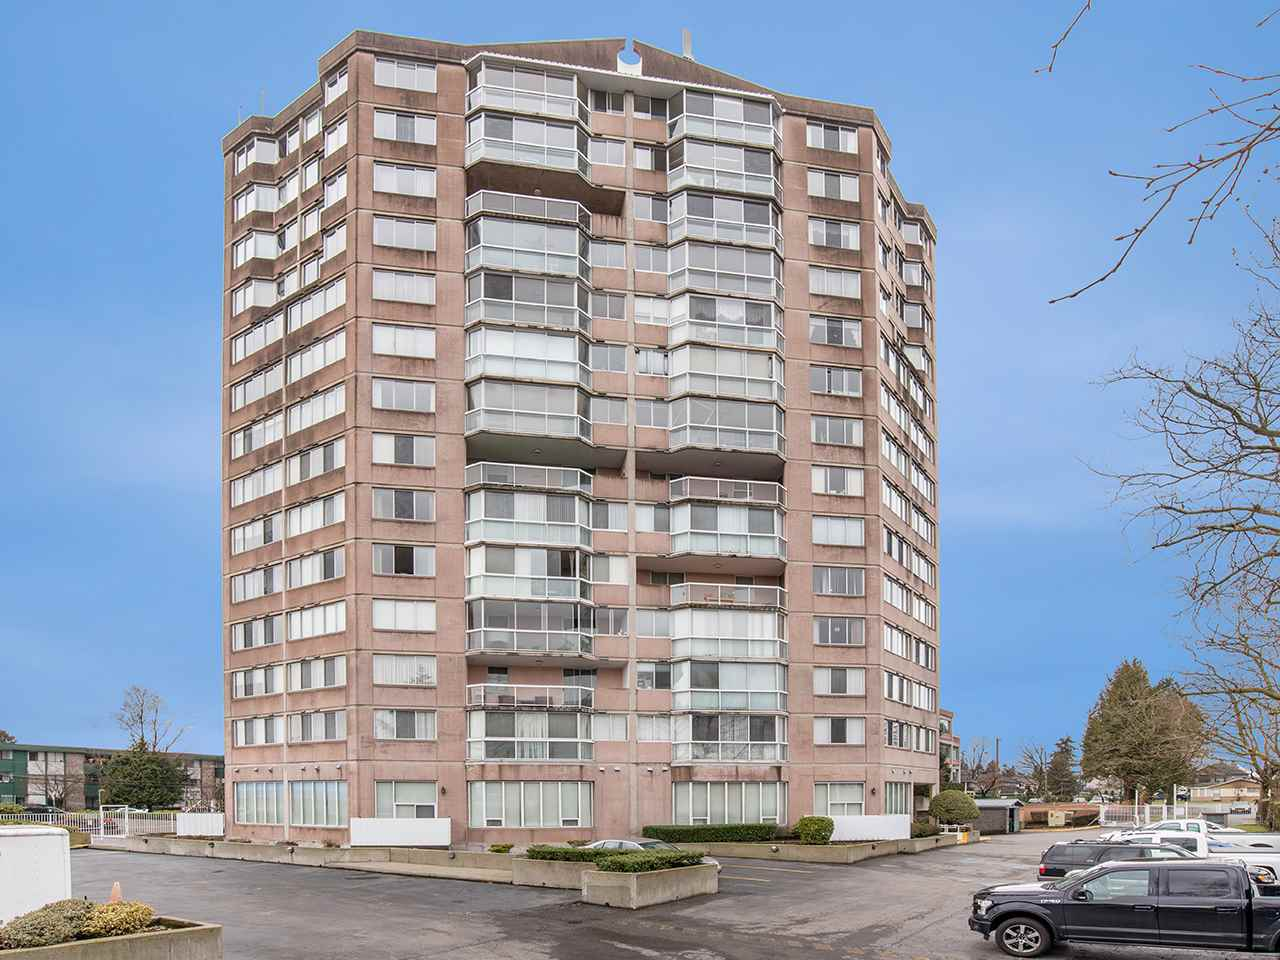 Sought after gated Kennedy Towers!! This is a very well run and safe strata with updates done to the plumbing, roof, elevators etc and has a strong contingency fund. The building offers an on site caretaker, large meeting room, workshop with a great selection of tools, exercise room and is a friendly welcoming community. This spacious and bright ground floor one bedroom unit was newly constructed in 2000 where the credit union used to be. At 900 sq ft this home is HUGE compared to most of the one bedrooms on the market today.